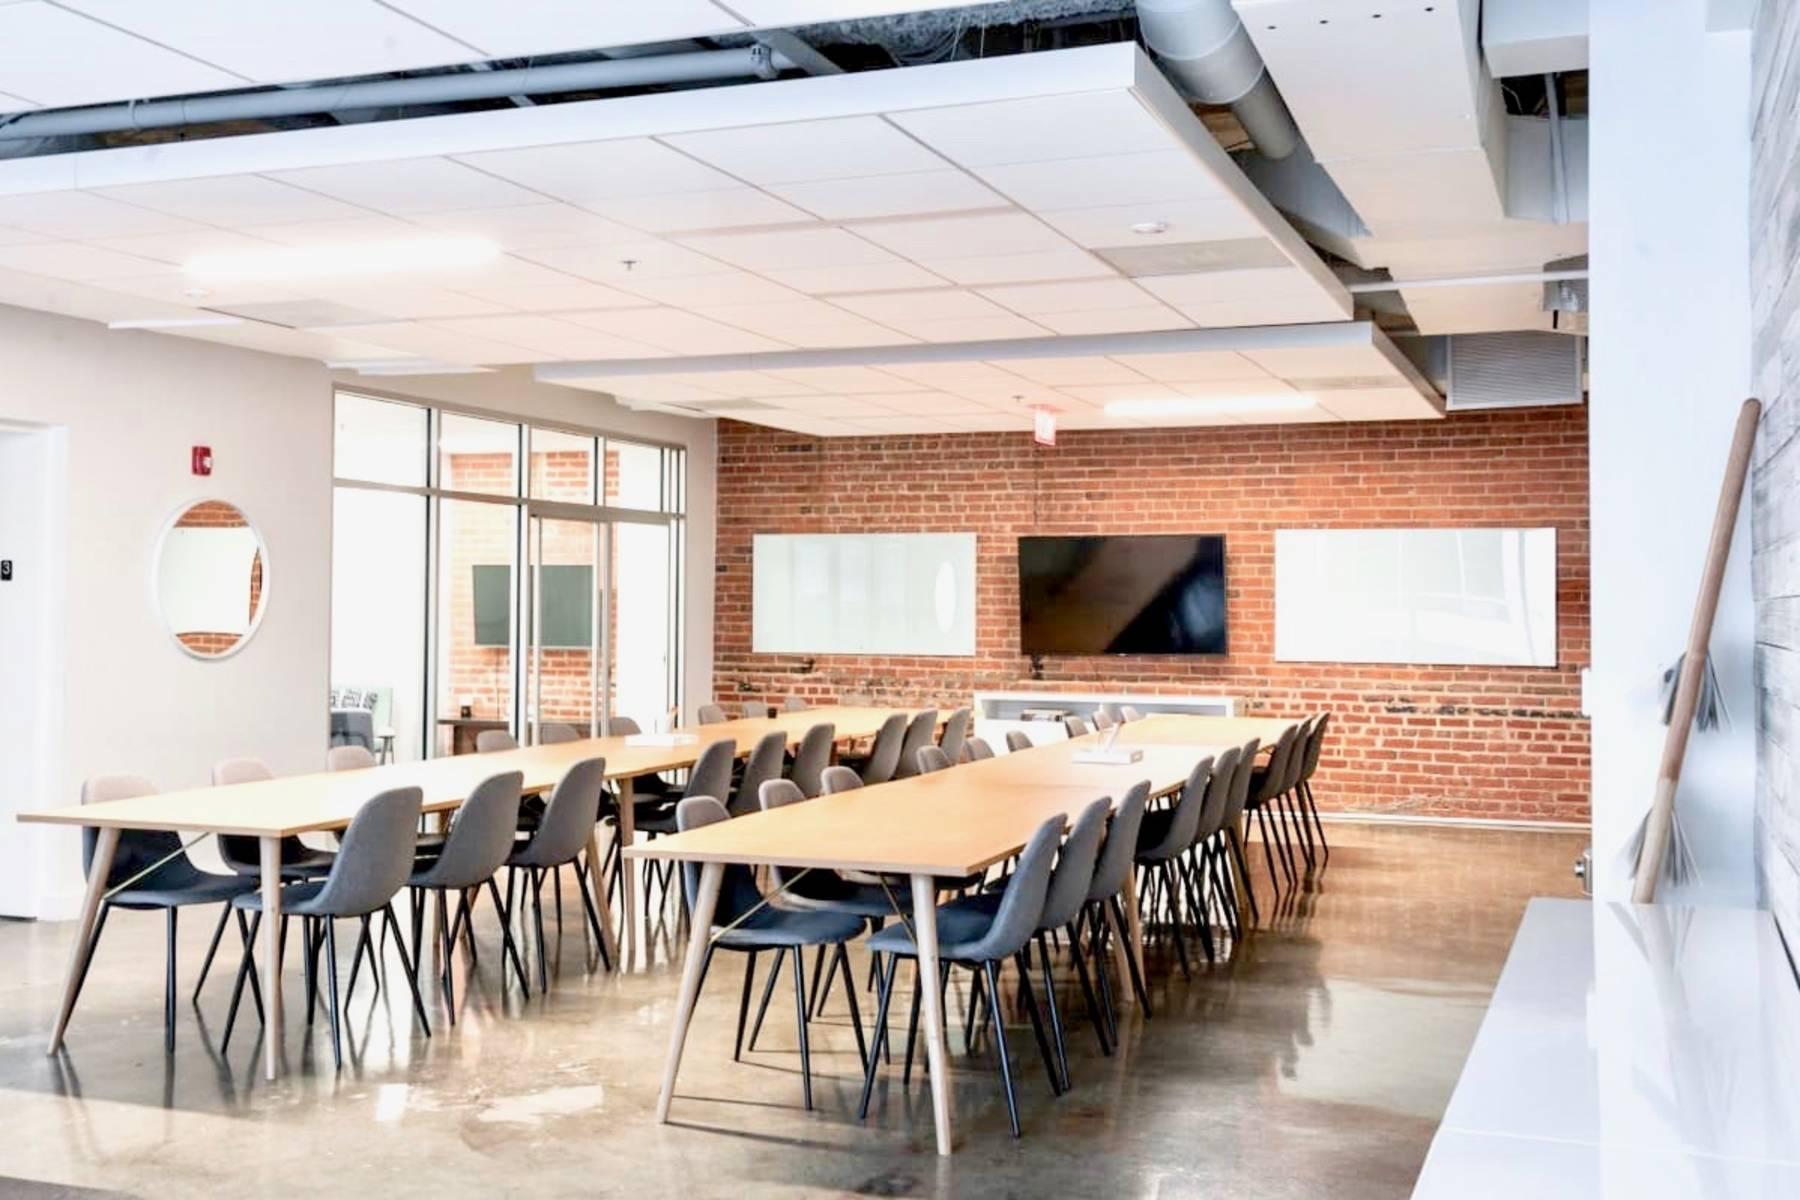 Not Your Average Workshop - Sunday, April 29th, 9:15, 11:15, & 1:00 at 915 F Street NW (Breather Space)Participate in one (or all) three not-so-average workshops where you'll get realistic tips and tools that can be applied to your business.